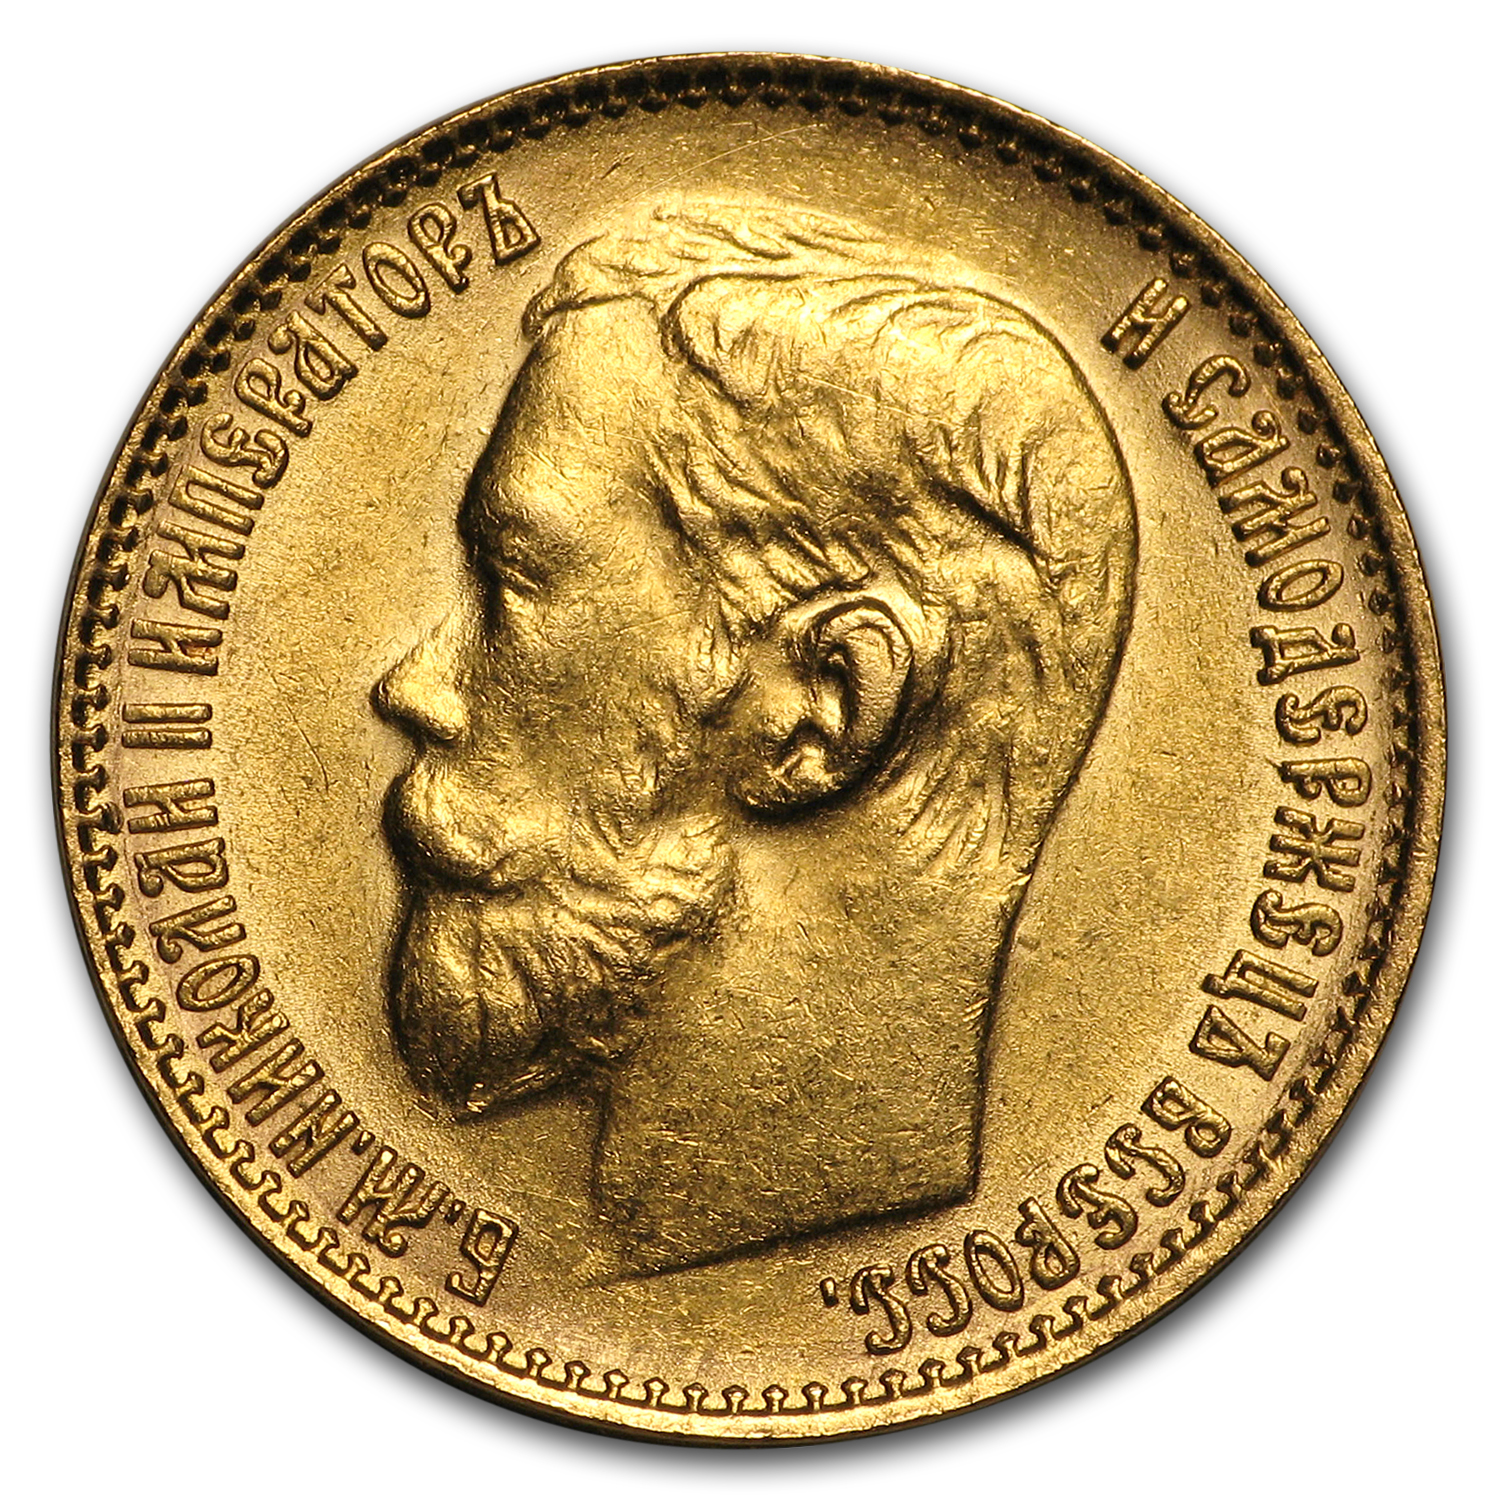 Russia 5 Roubles Gold Coin (Random Dates) - AGW .1245